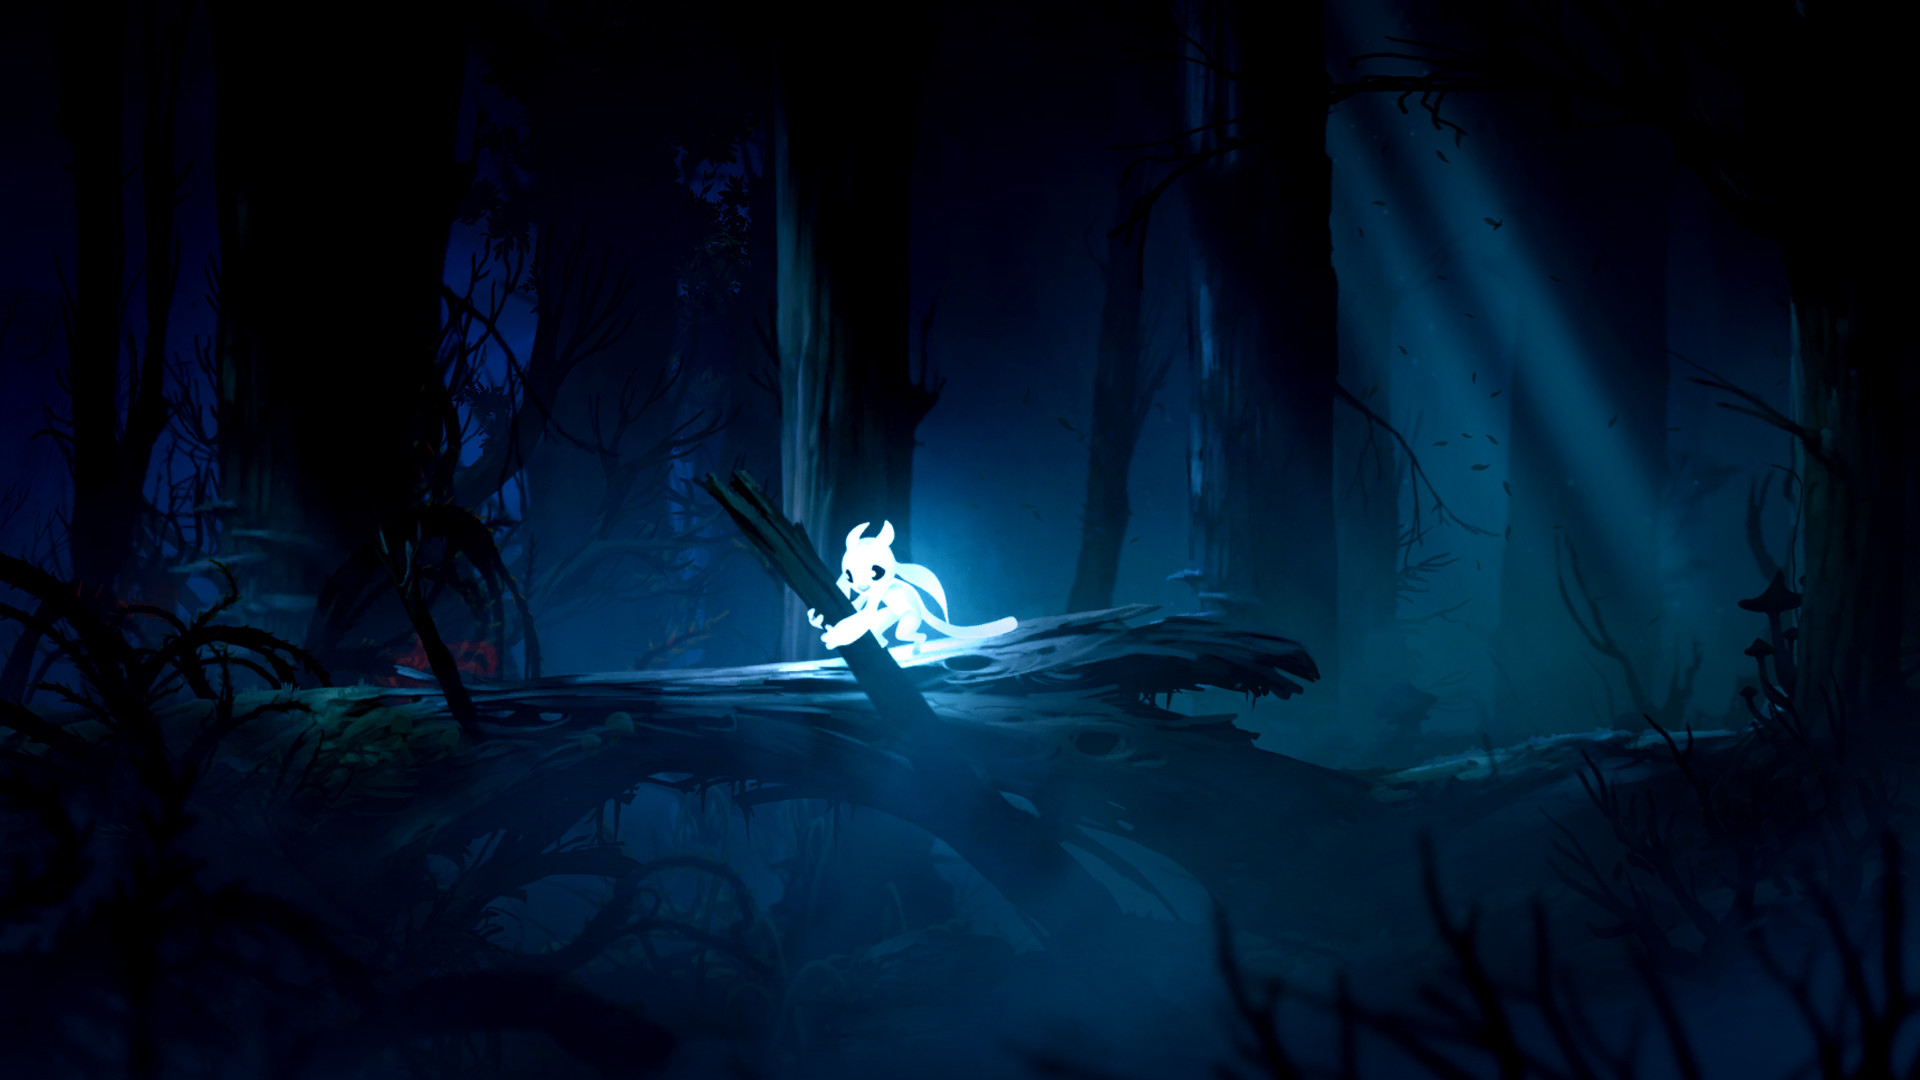 Ori and the Blind Forest: Definitive Edition screenshot 1